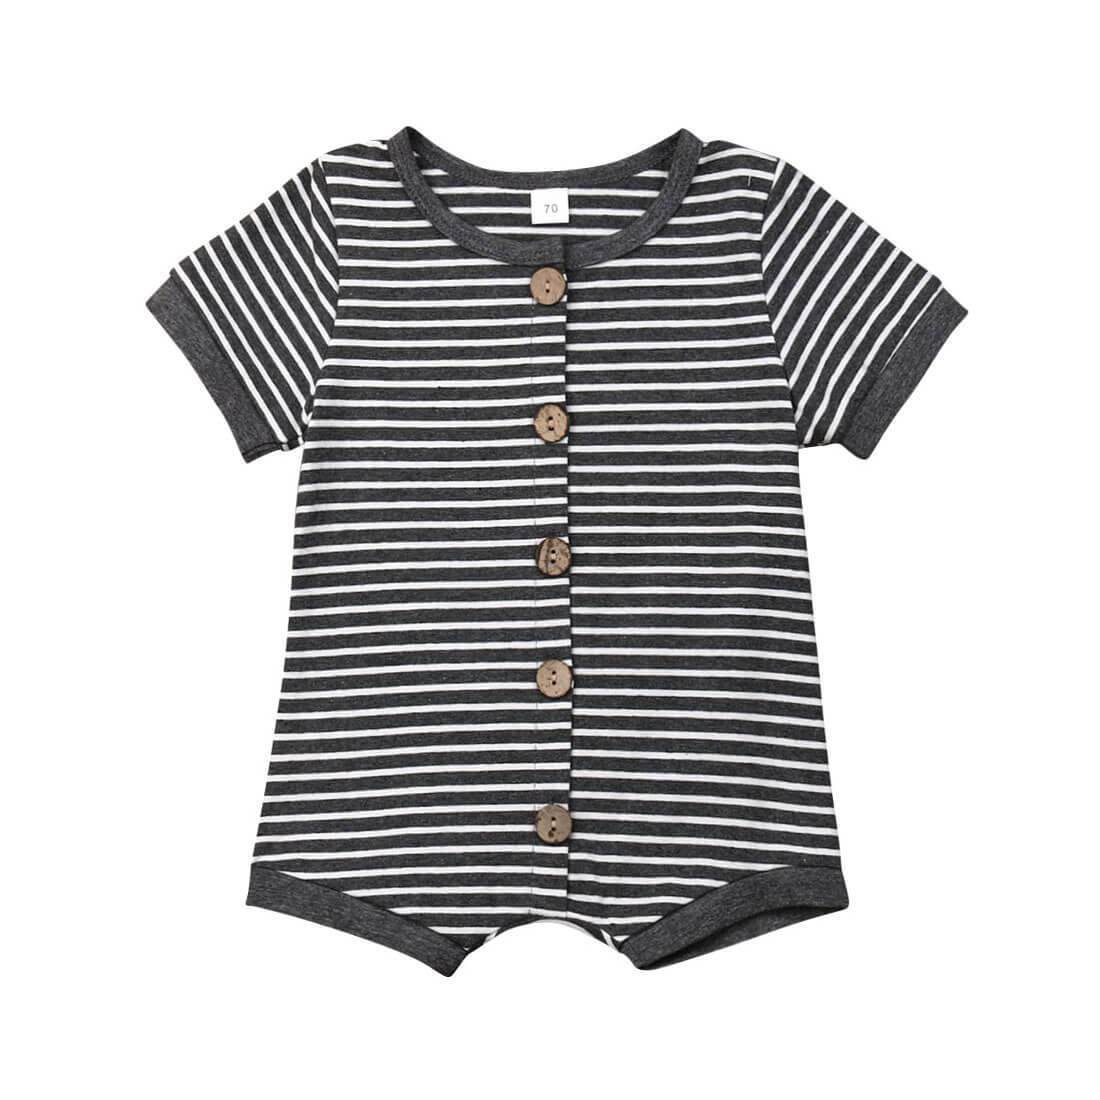 Basic Striped Romper - 3-6 months